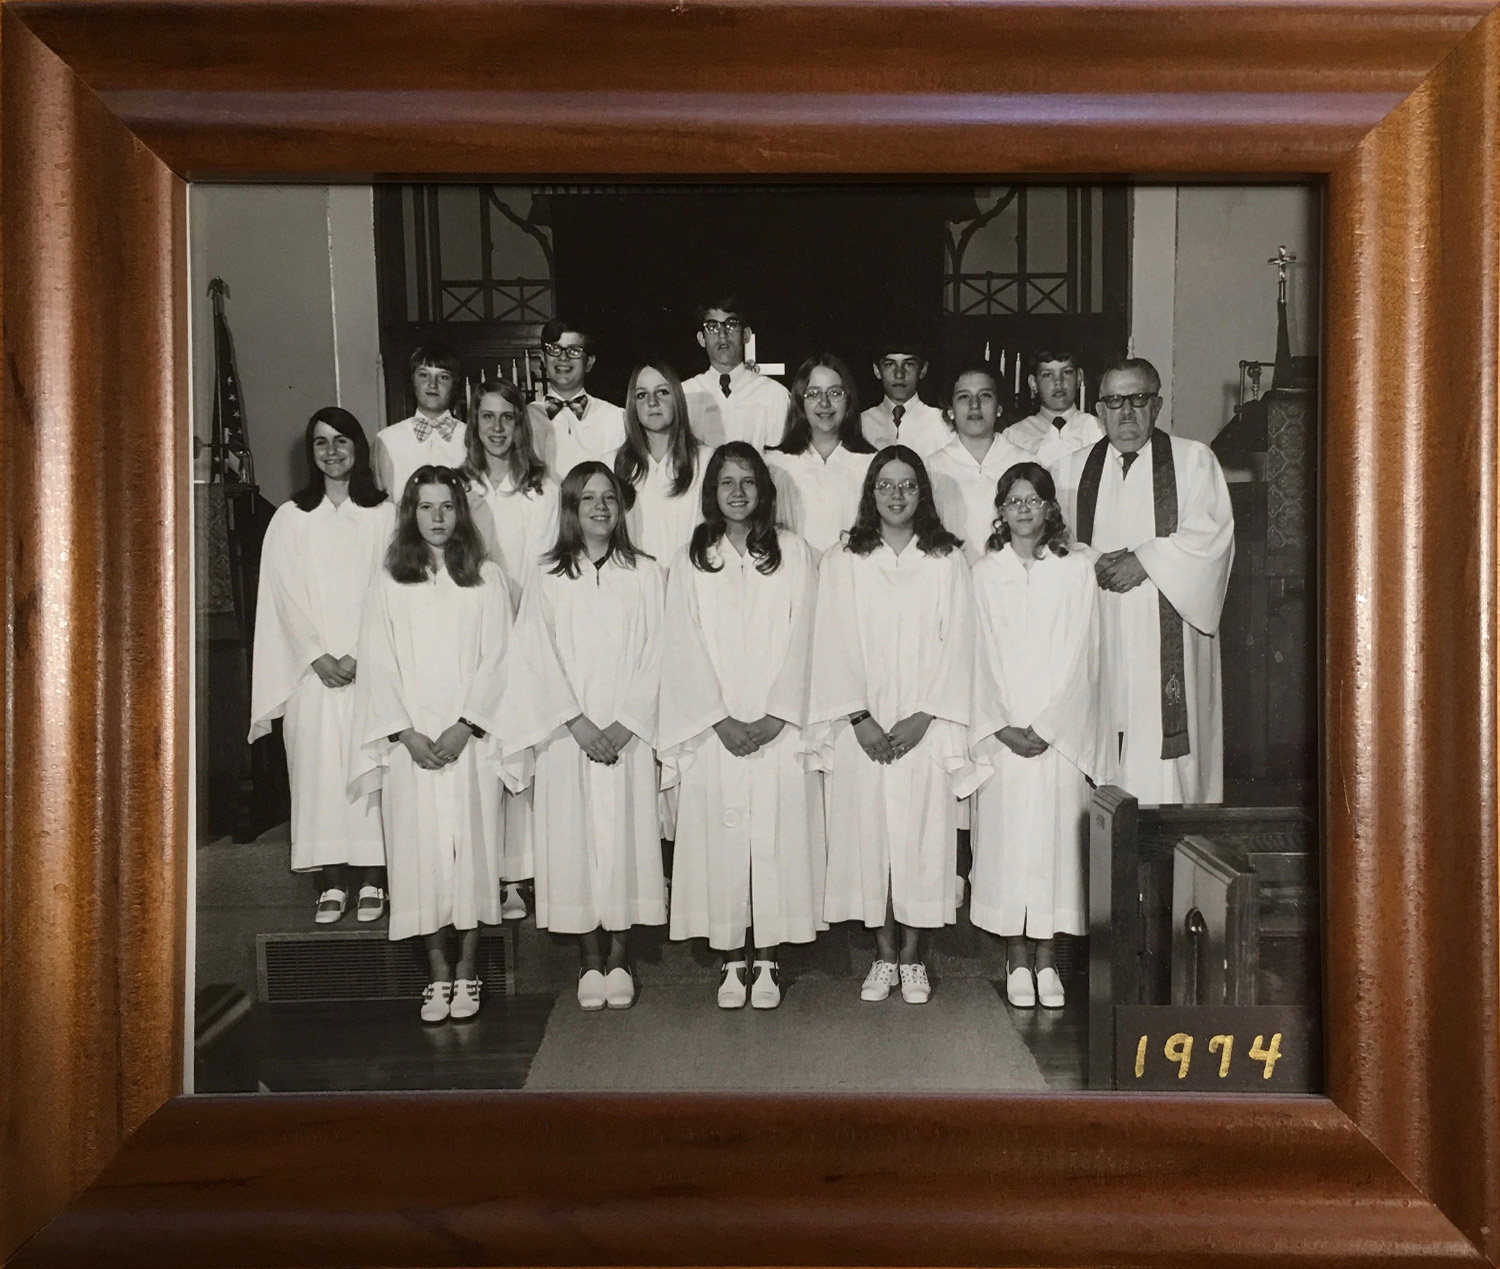 1974 Confirmation Class at St John UCC New Athens